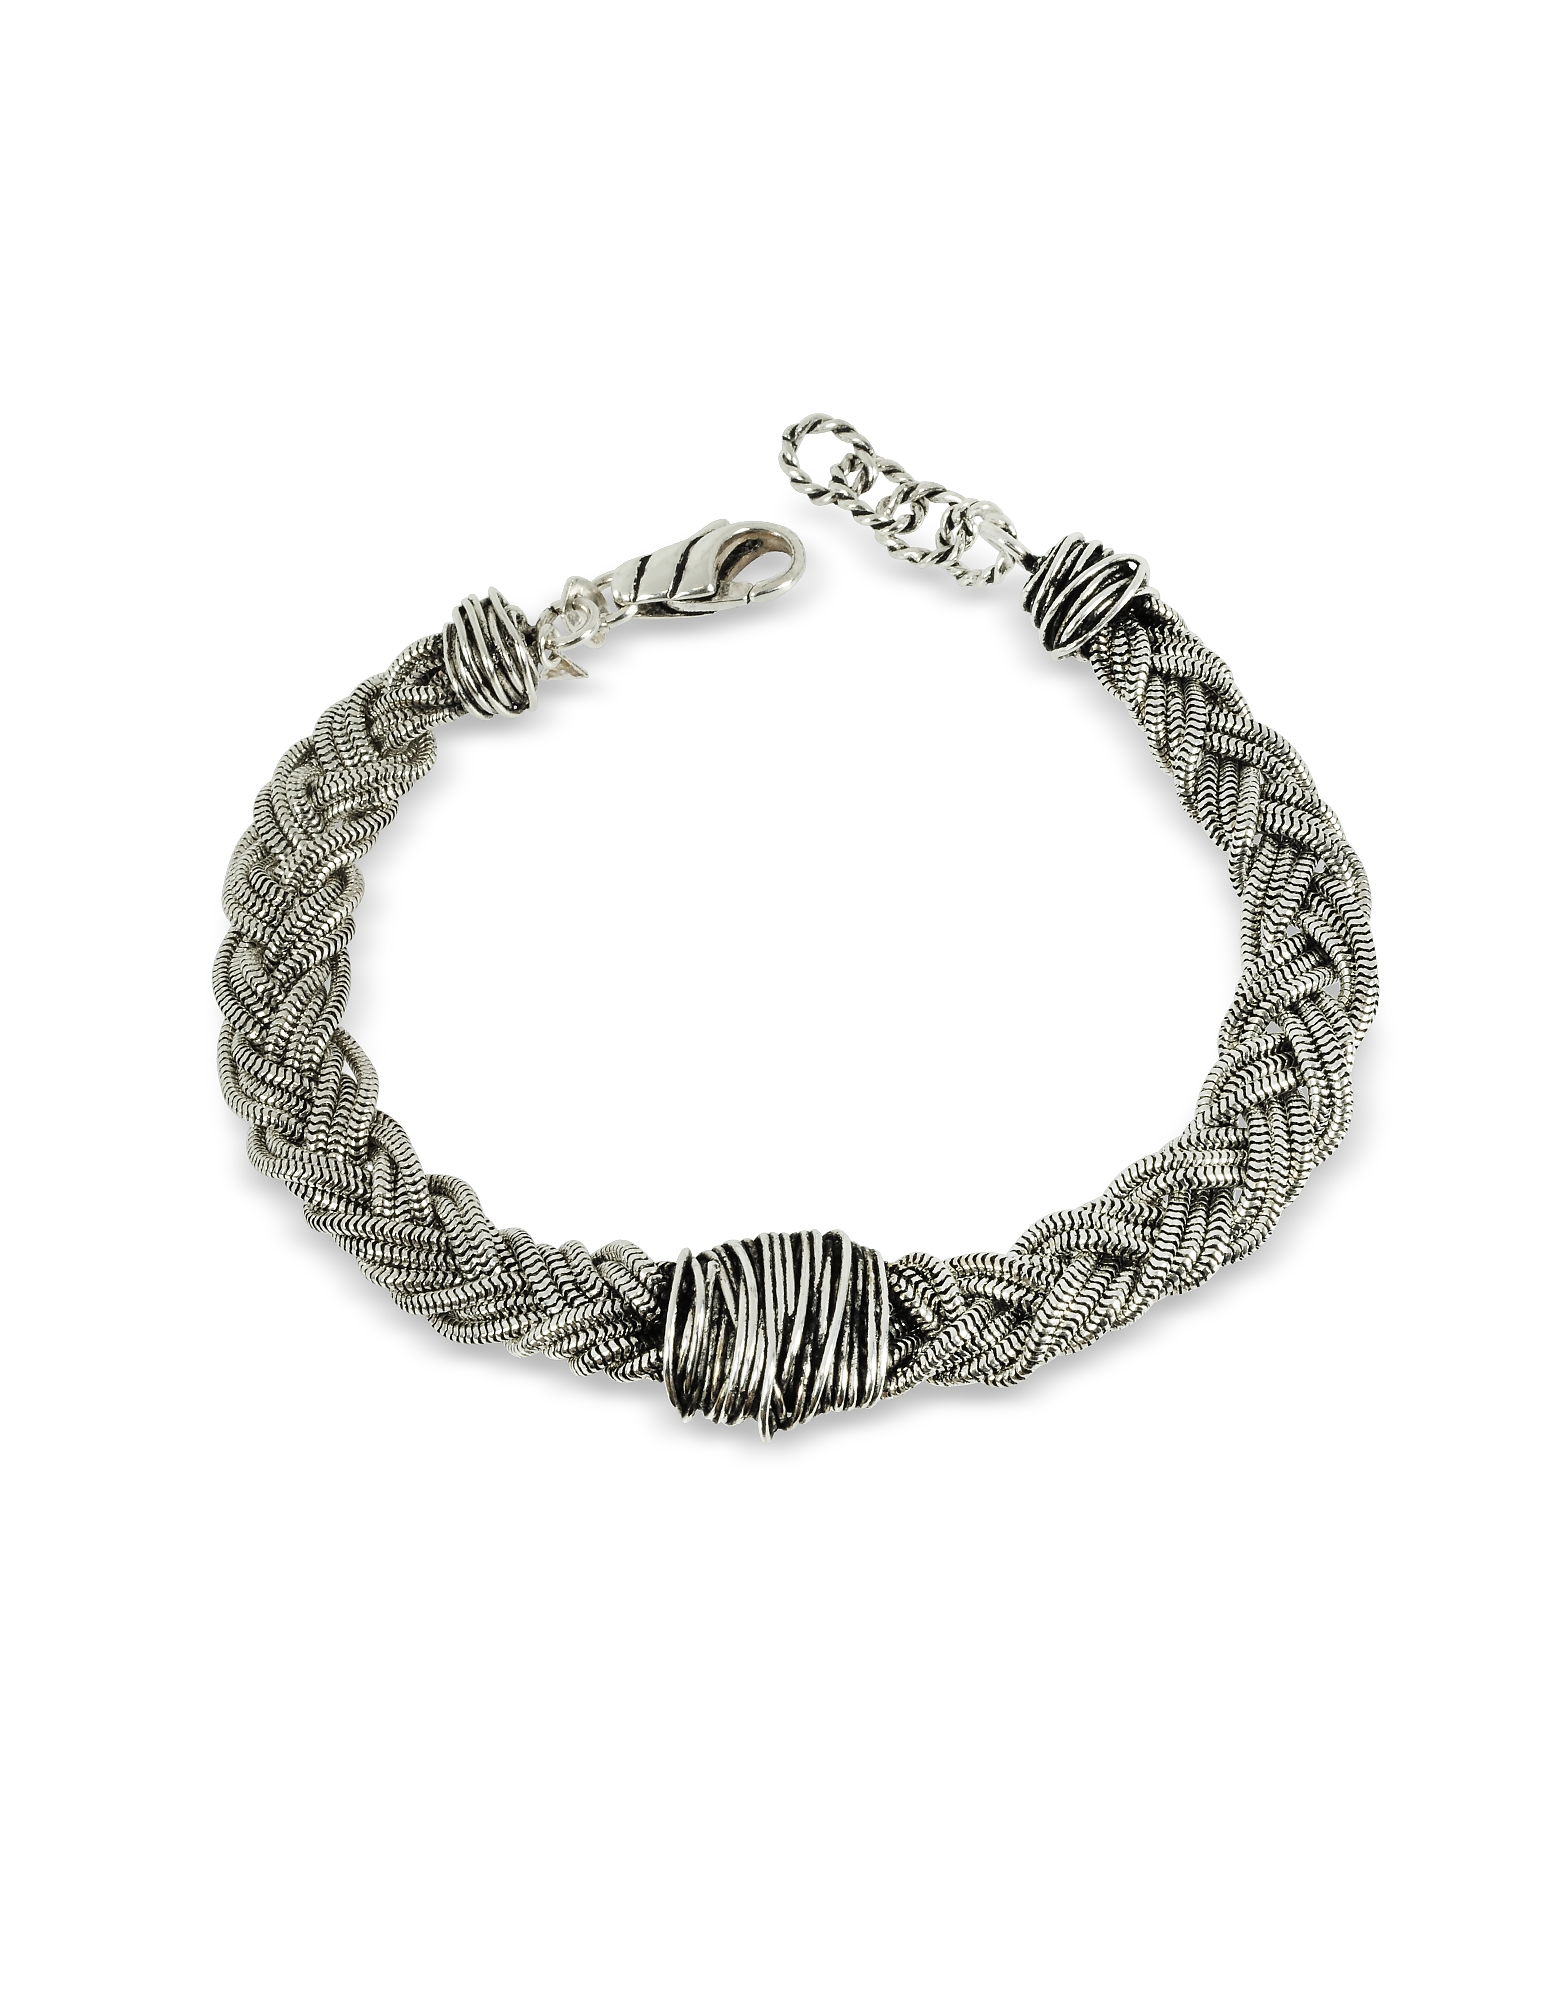 Sterling Silver Braid w/Etruscan Knot